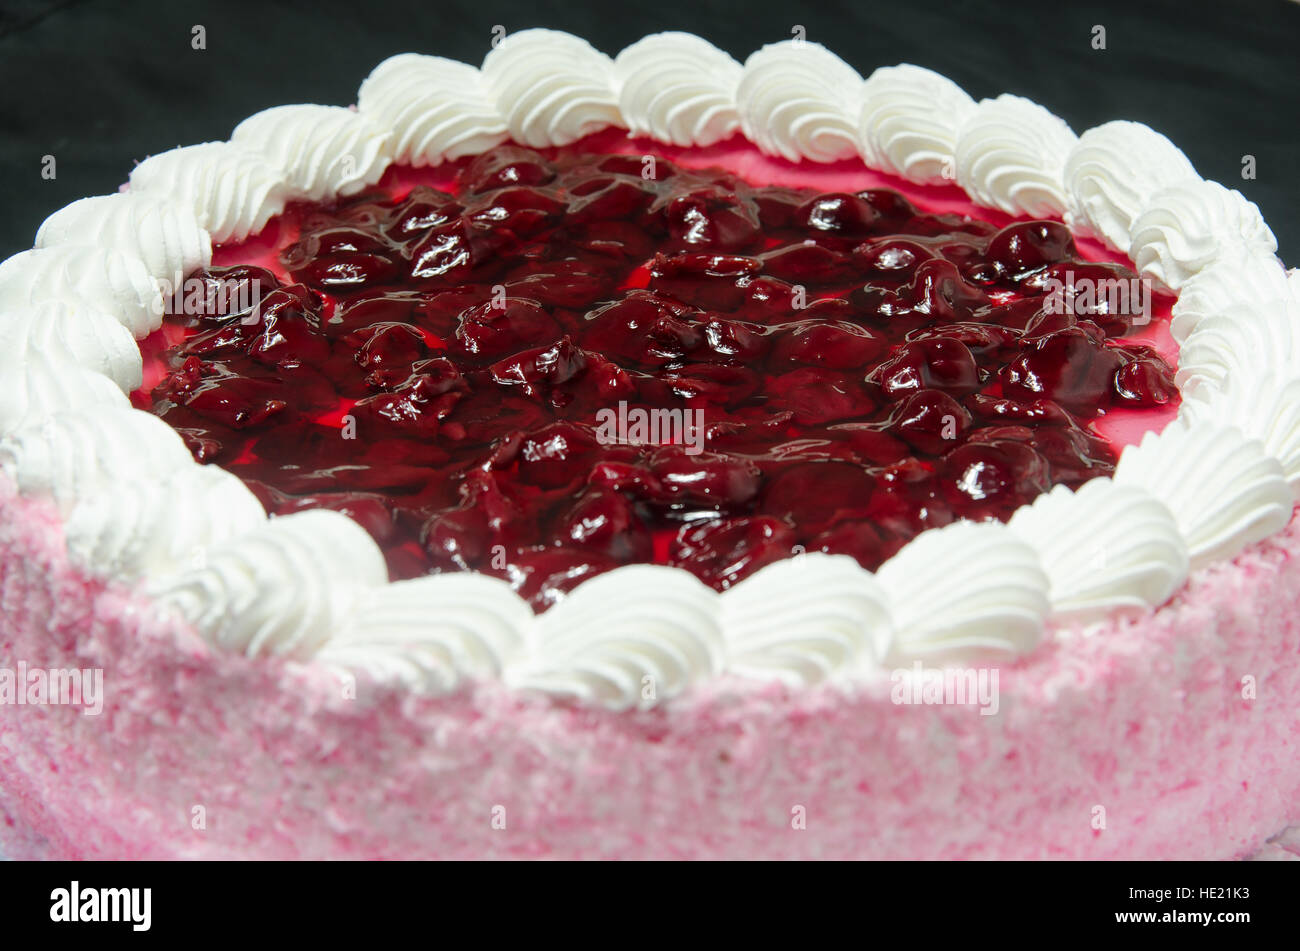 Jelly cake with coconut flakes and cream - Stock Image